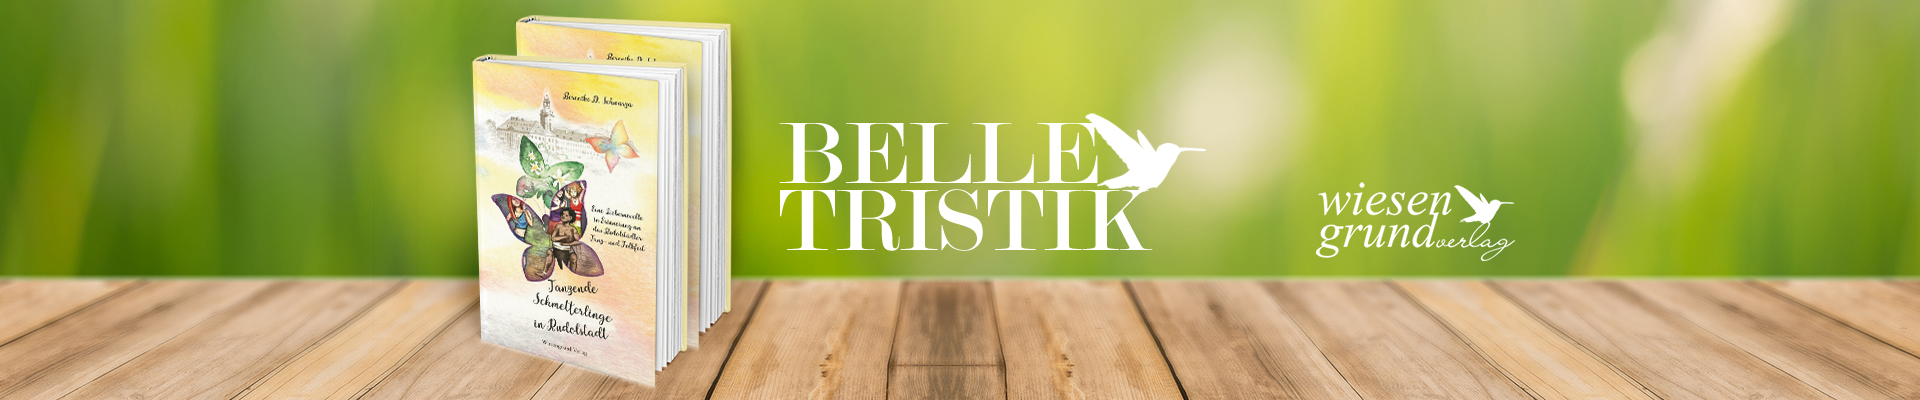 header-Belletristik-TanzendeSchmetterlinge